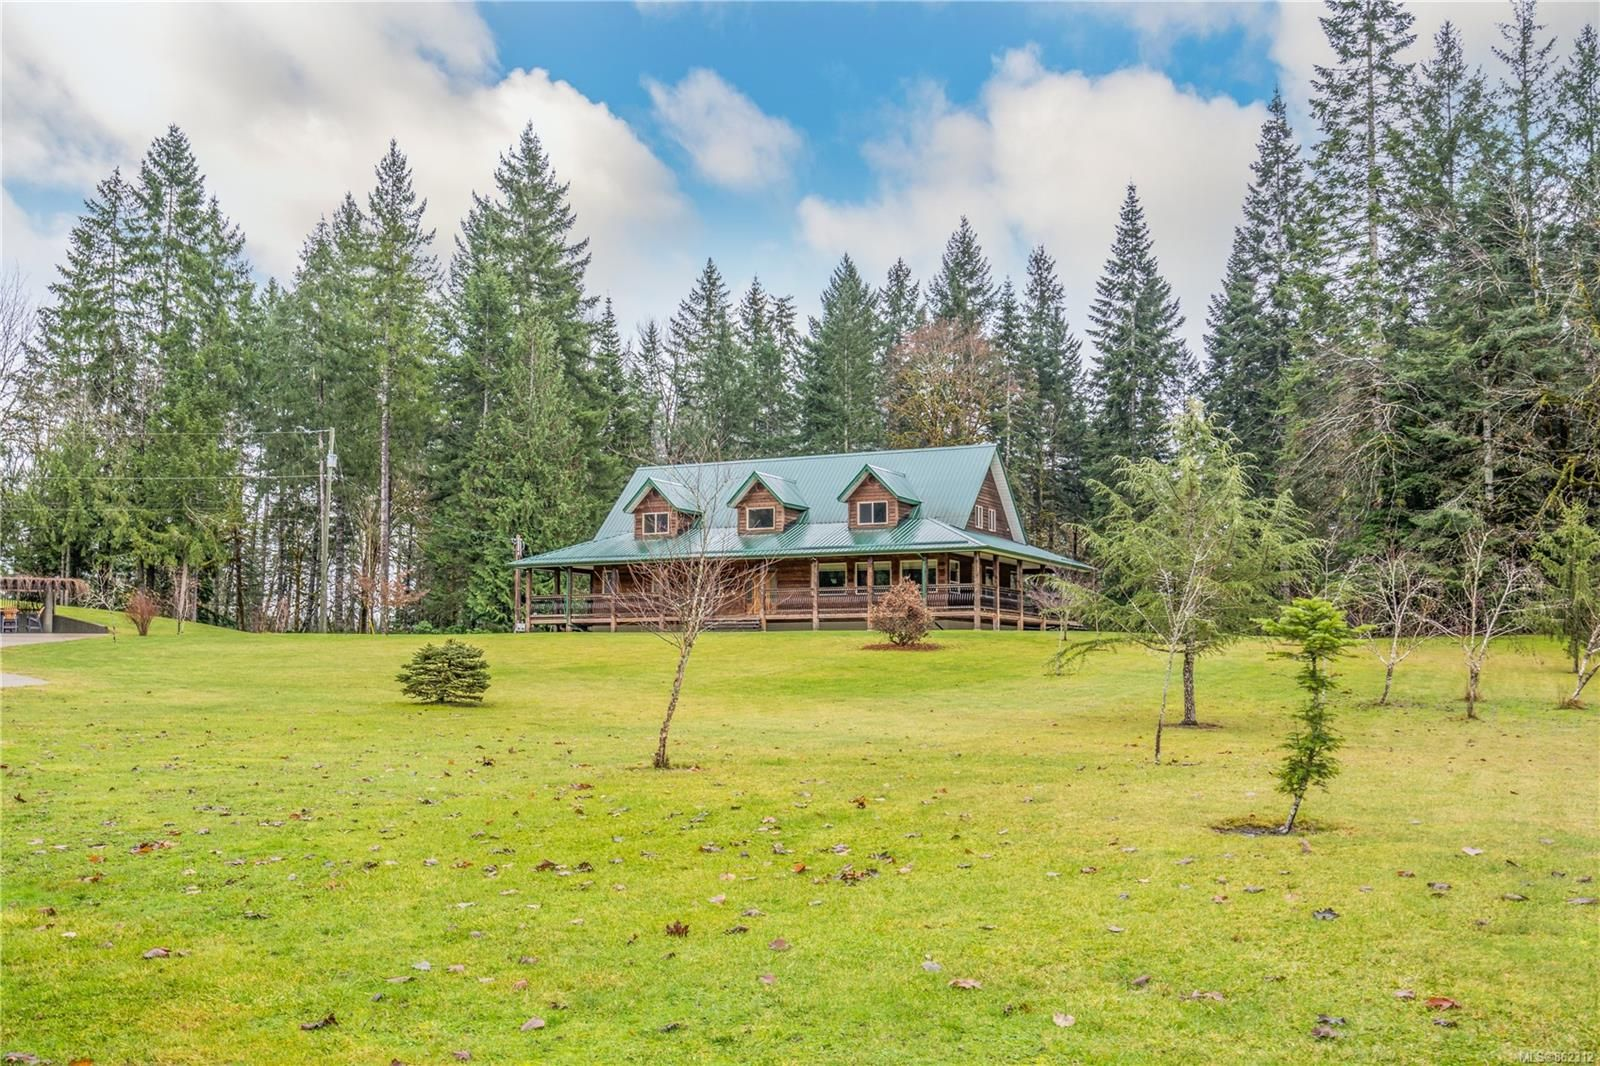 Photo 11: Photos: 7380 Plymouth Rd in : PA Alberni Valley House for sale (Port Alberni)  : MLS®# 862312